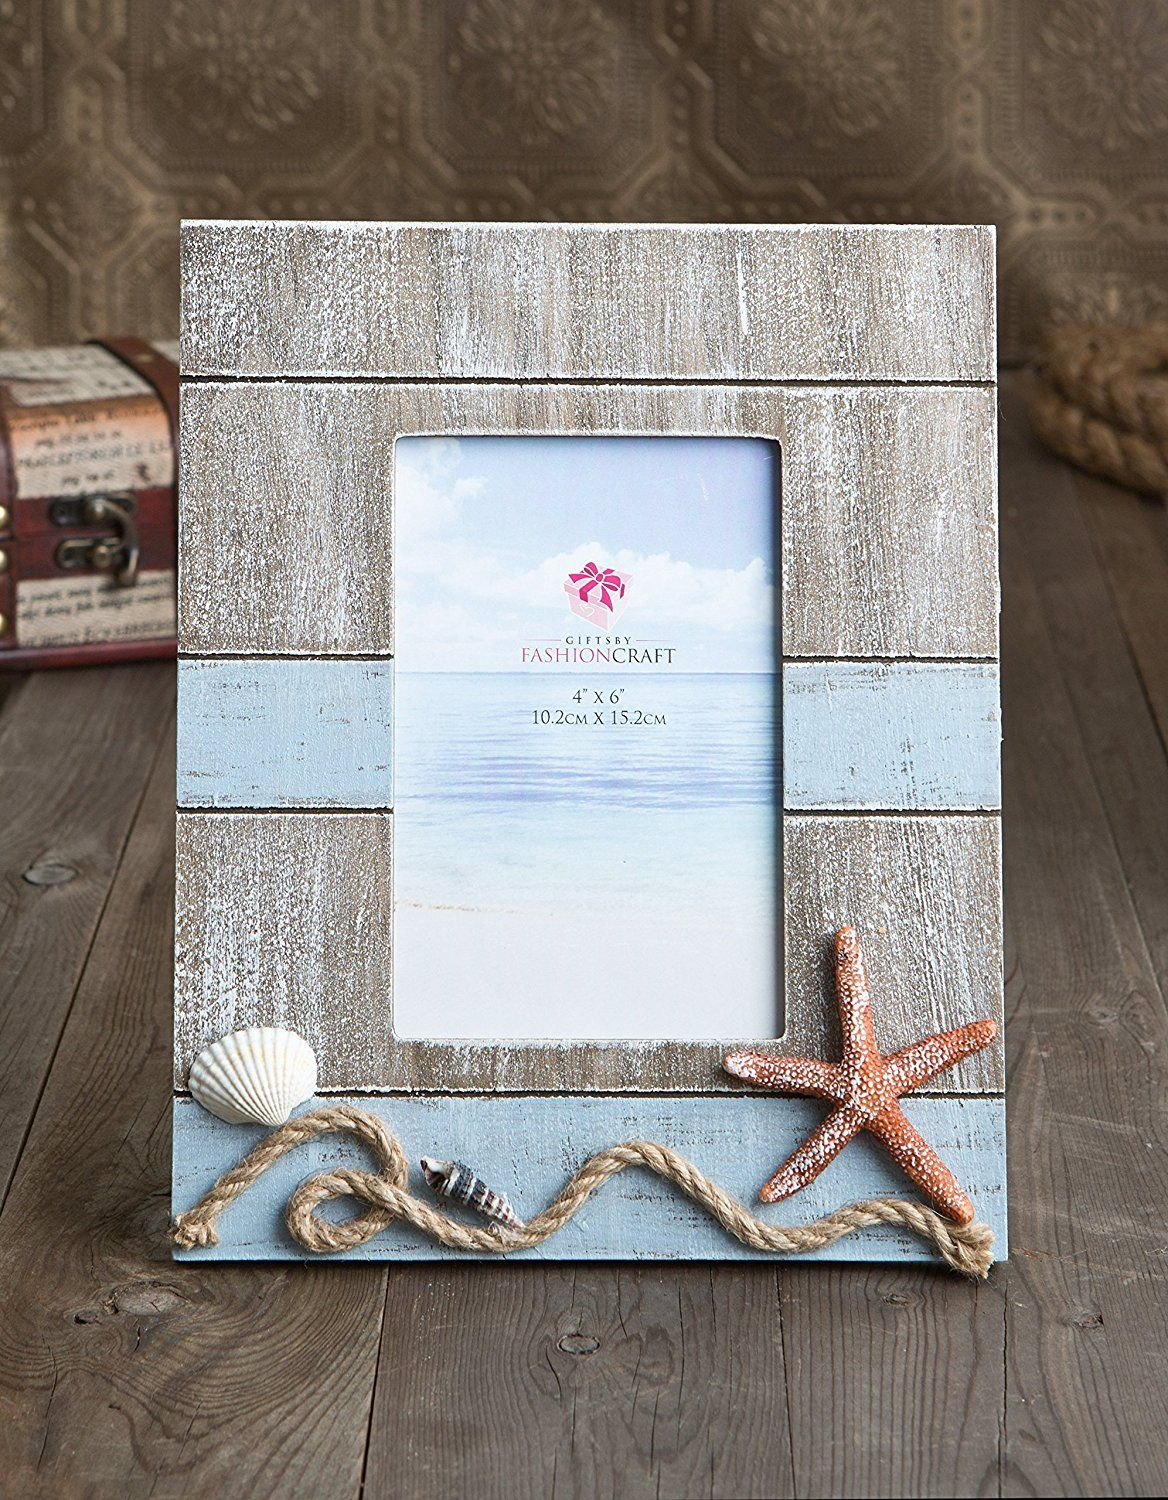 Fashioncraft Lovely Beach Themed Frame With Star Fish And Rope